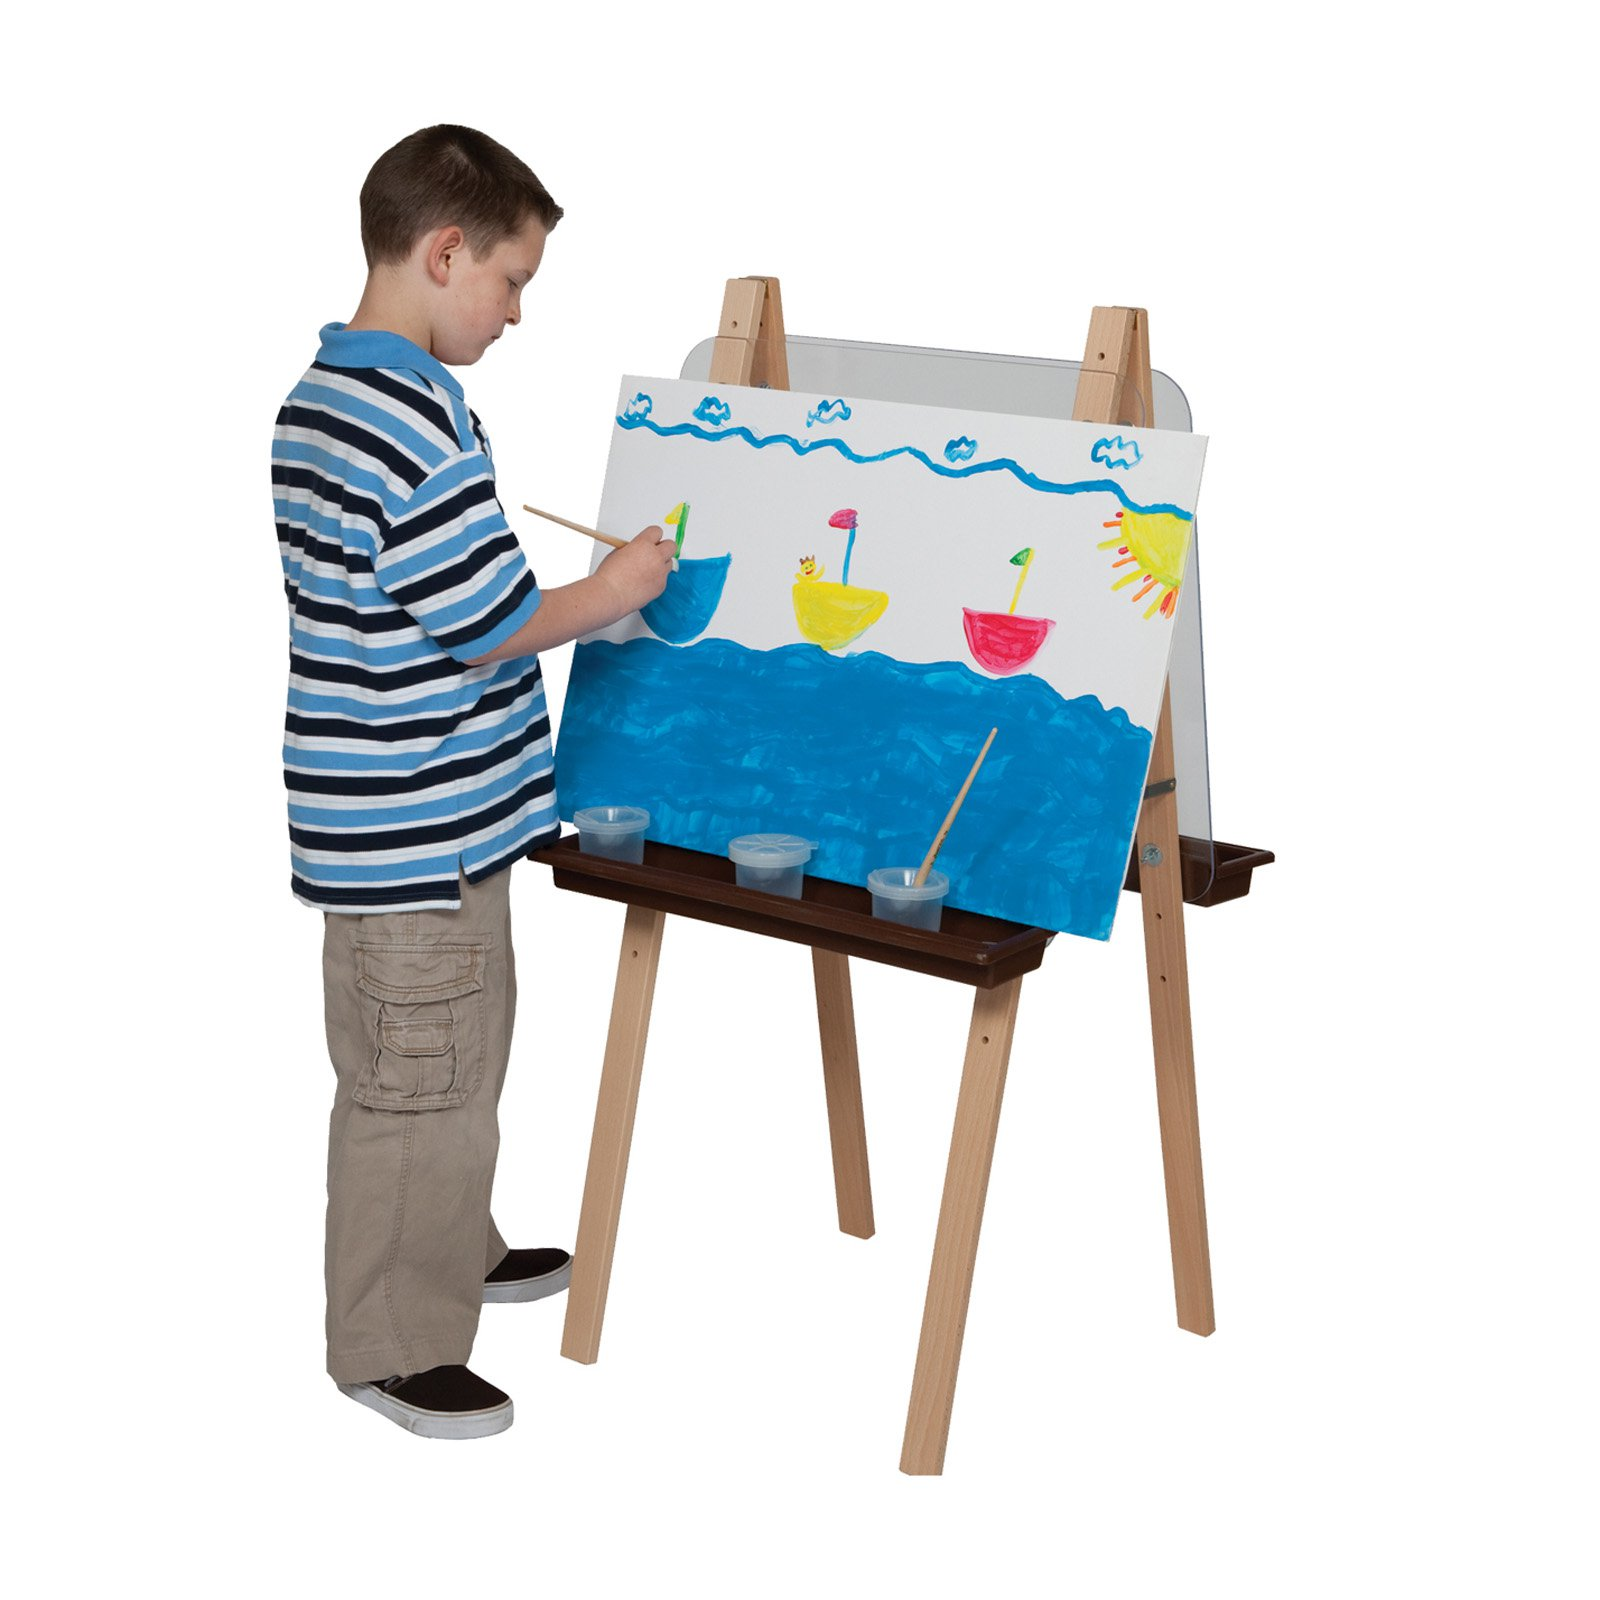 Wood Designs Double Adjustable Easel with Acrylic and Brown Trays